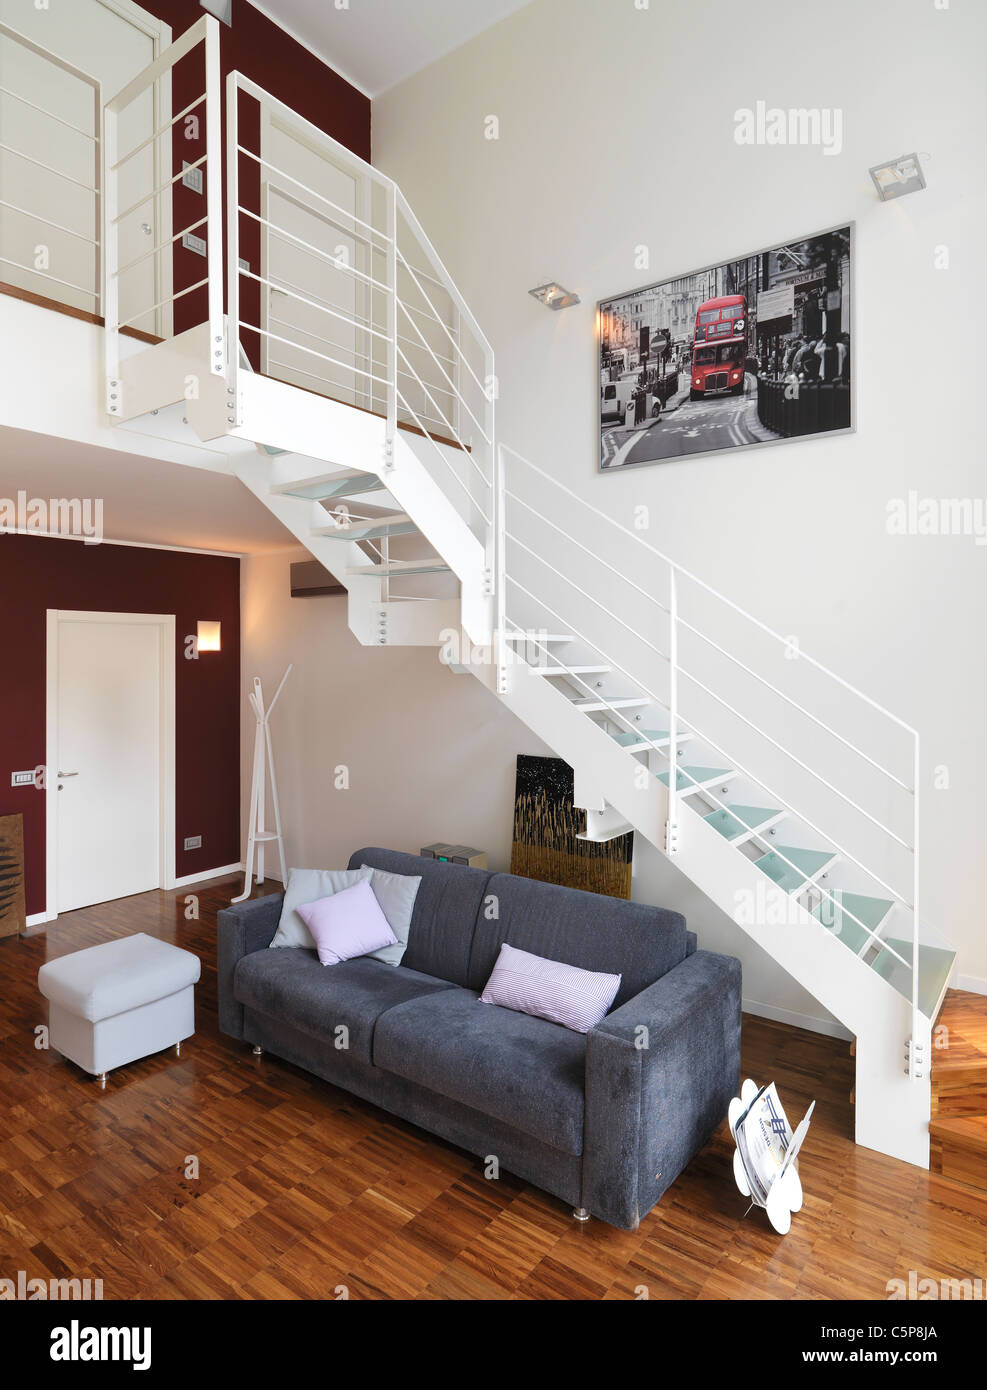 Modern living room with gray sofa under a metal staircase for Divano incassato